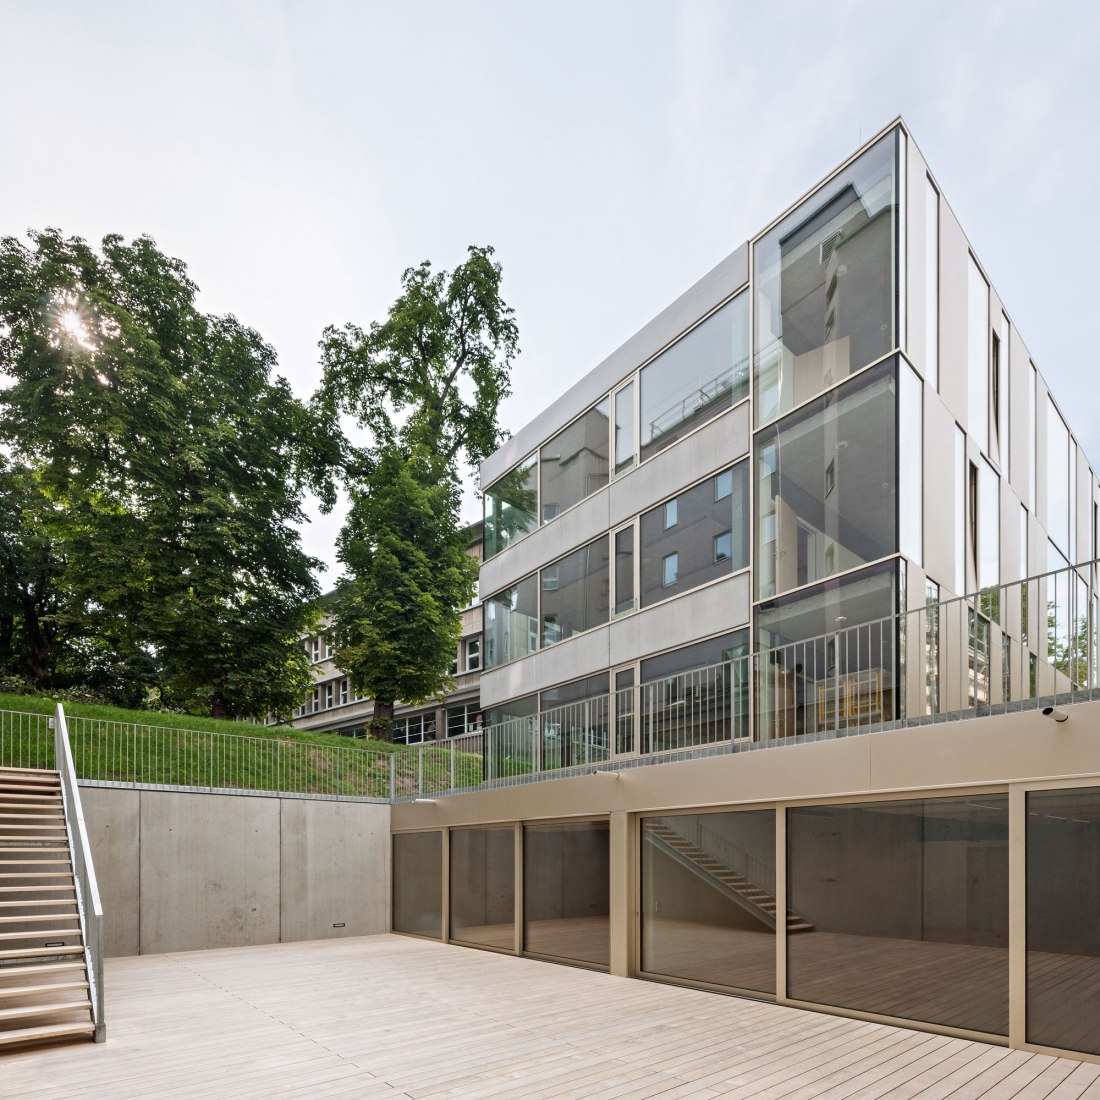 Exterior view. Extension of the Lycée Français and Renovation of the Studio Molière by Dietmar Feichtinger Architectes. Photograph © Hertha Hurnaus.